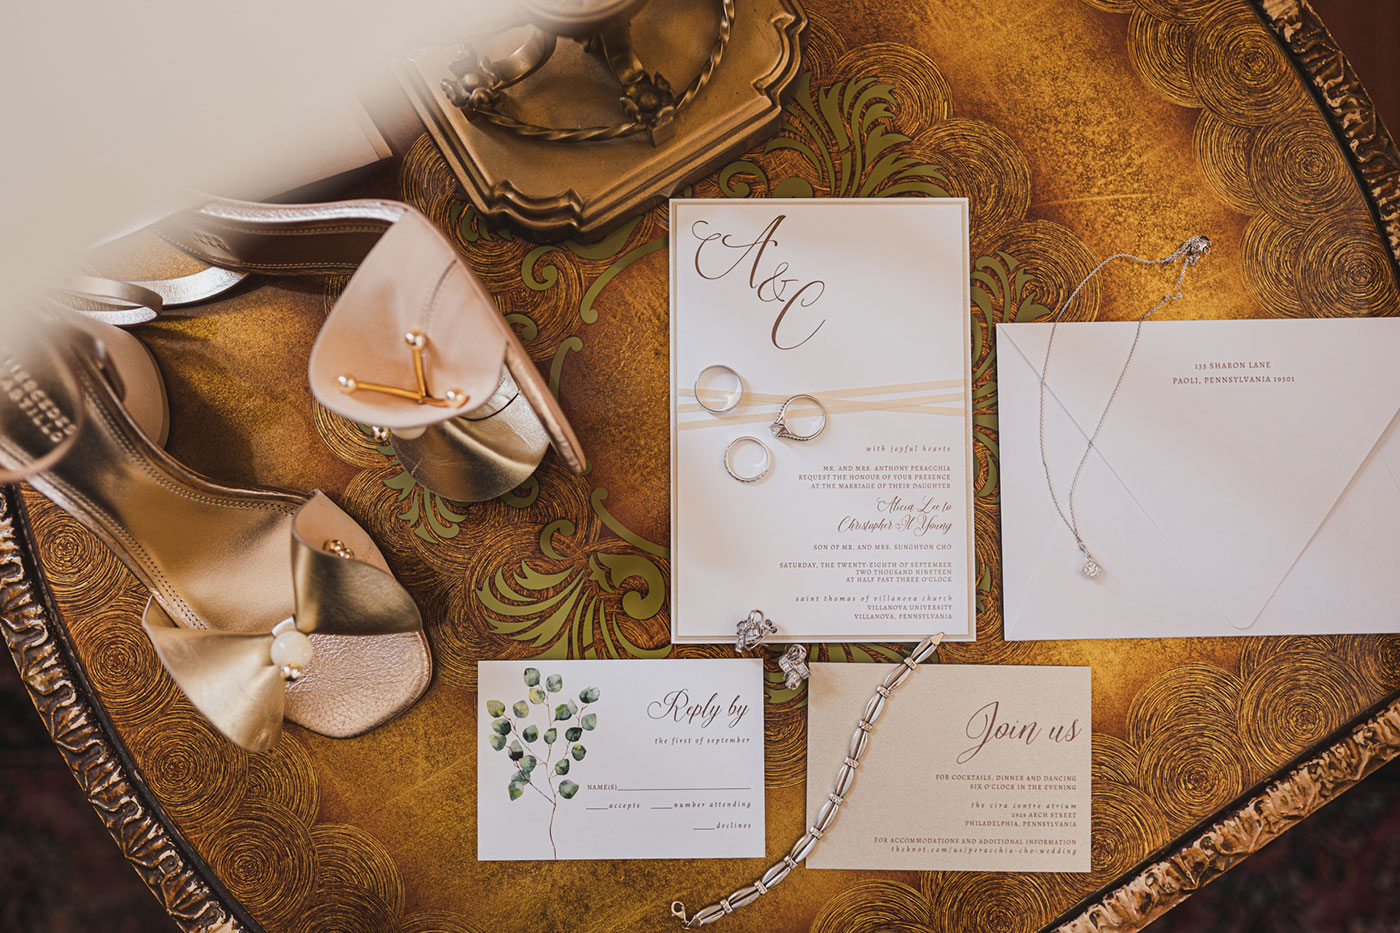 wedding details from a wedding at Saint Thomas of Villanova by Weddings by Hanel